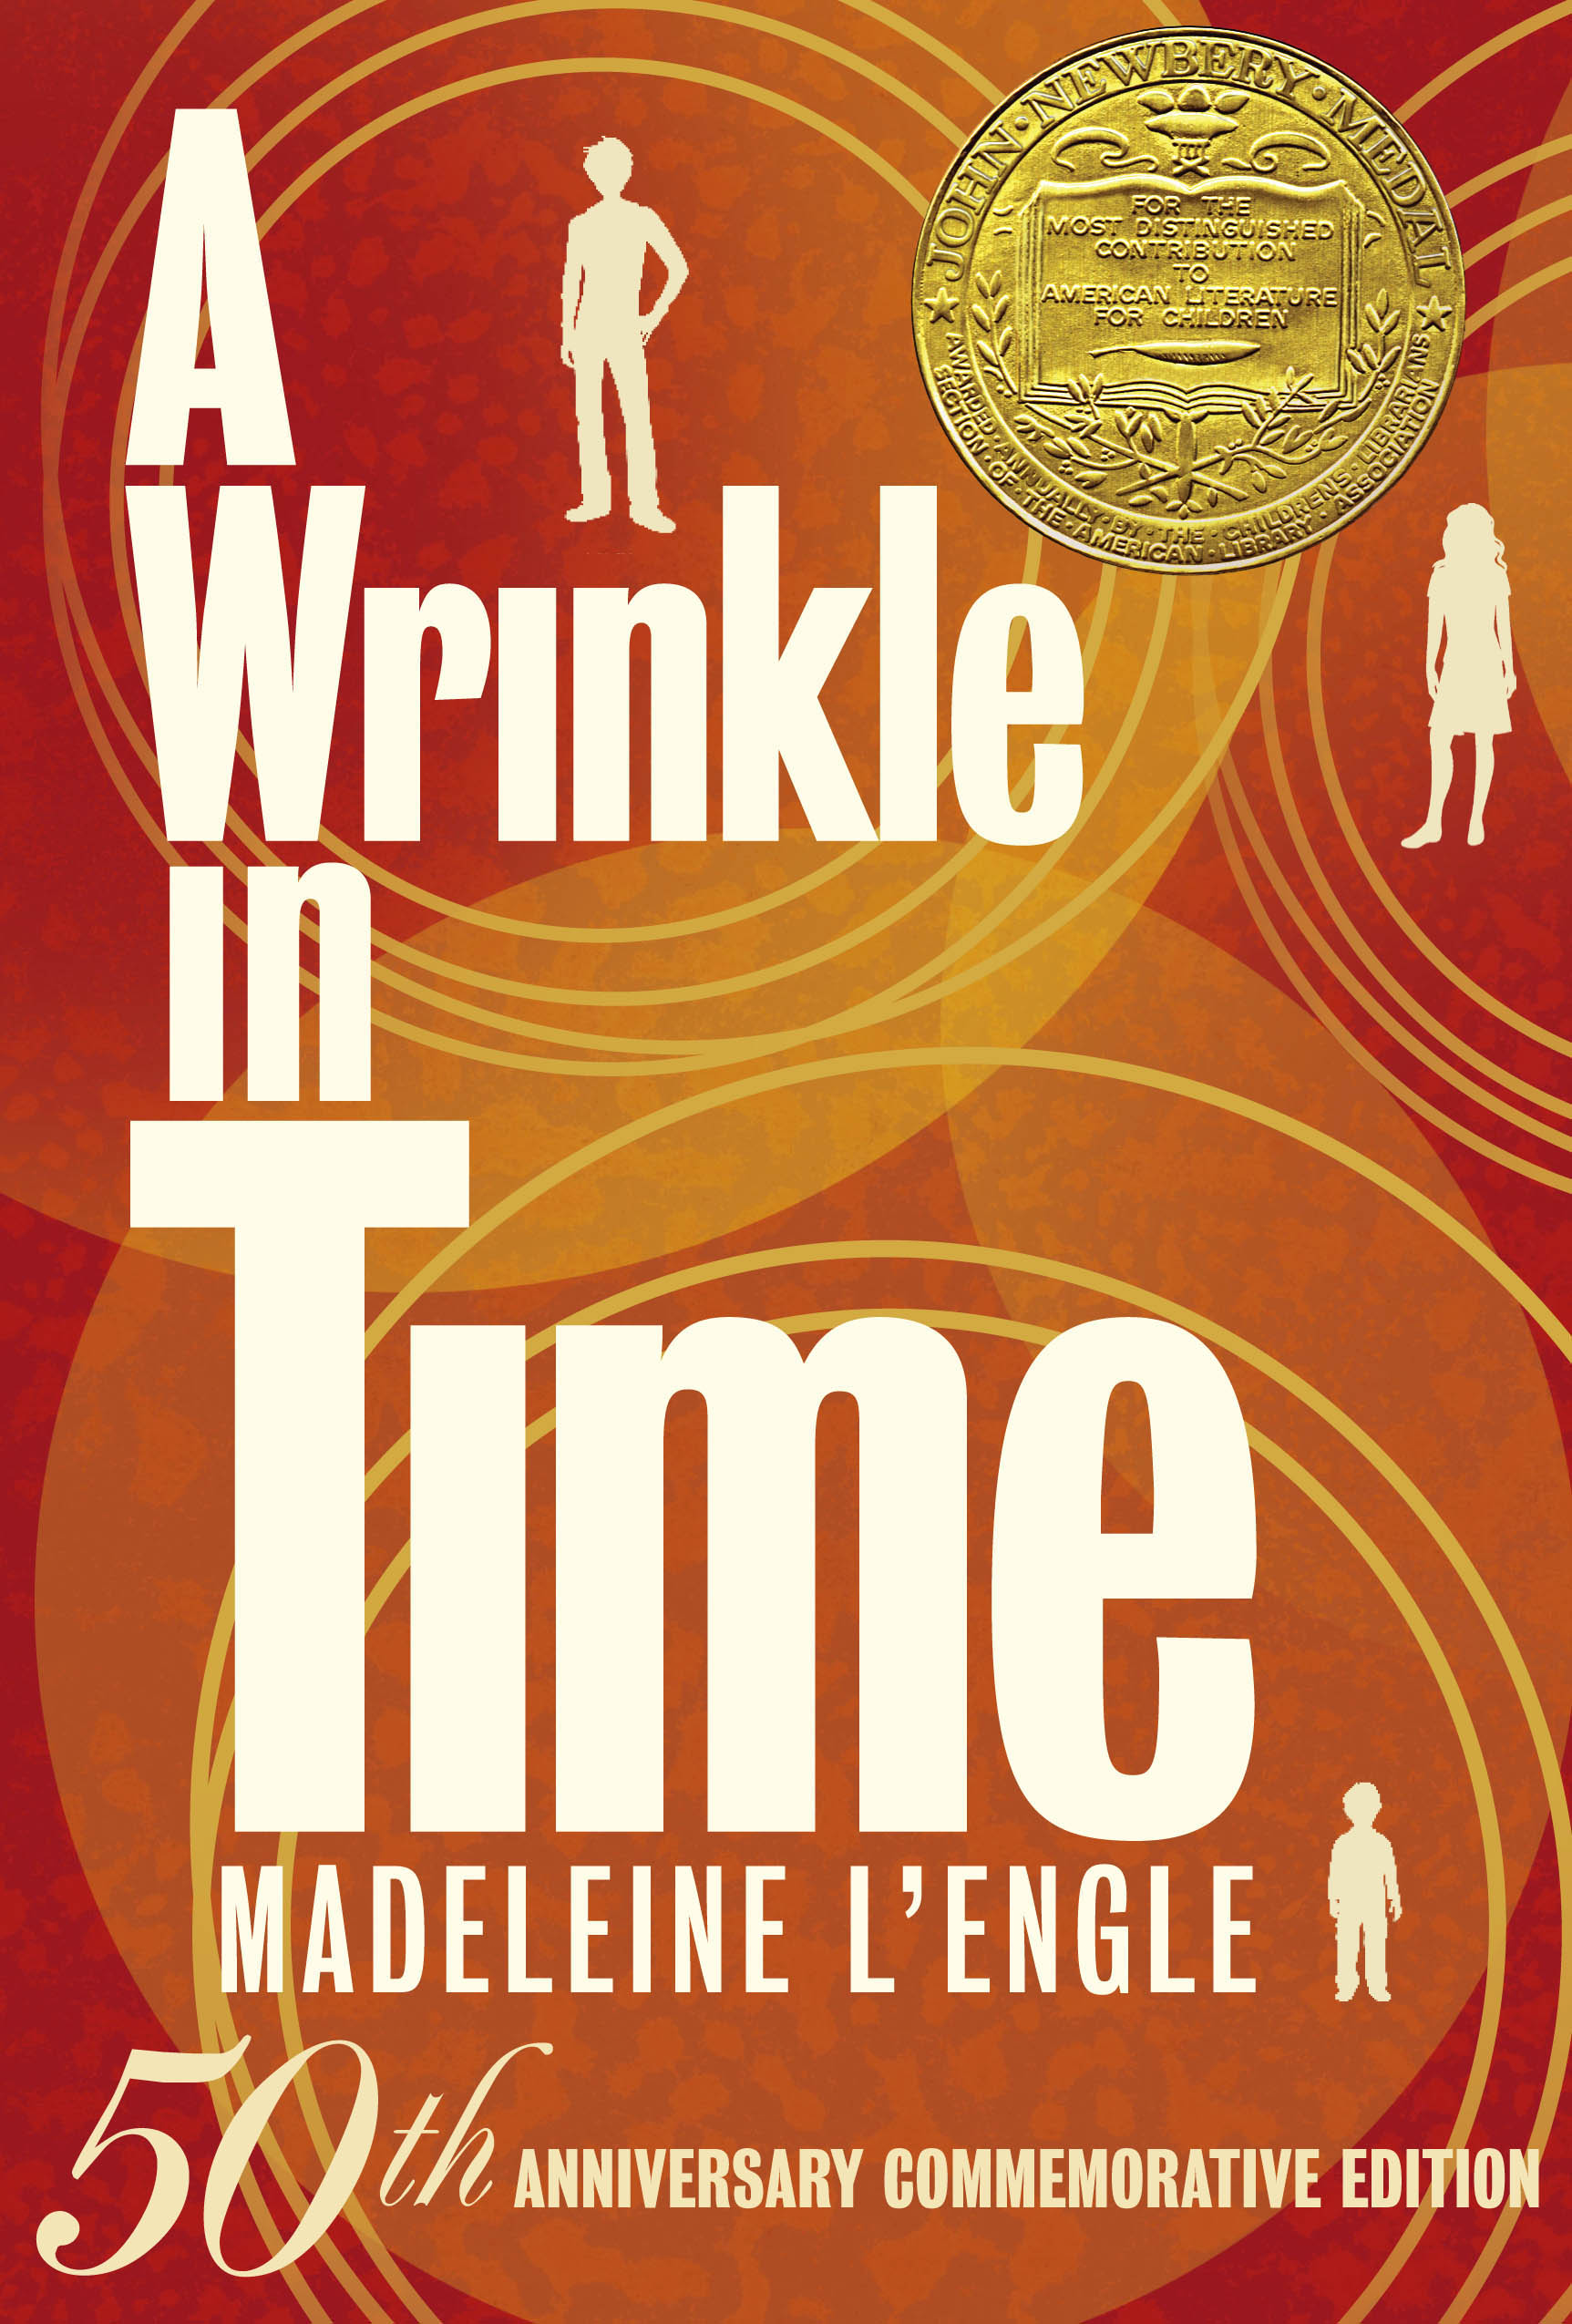 Celebrating 50 Years Of A Wrinkle In Time